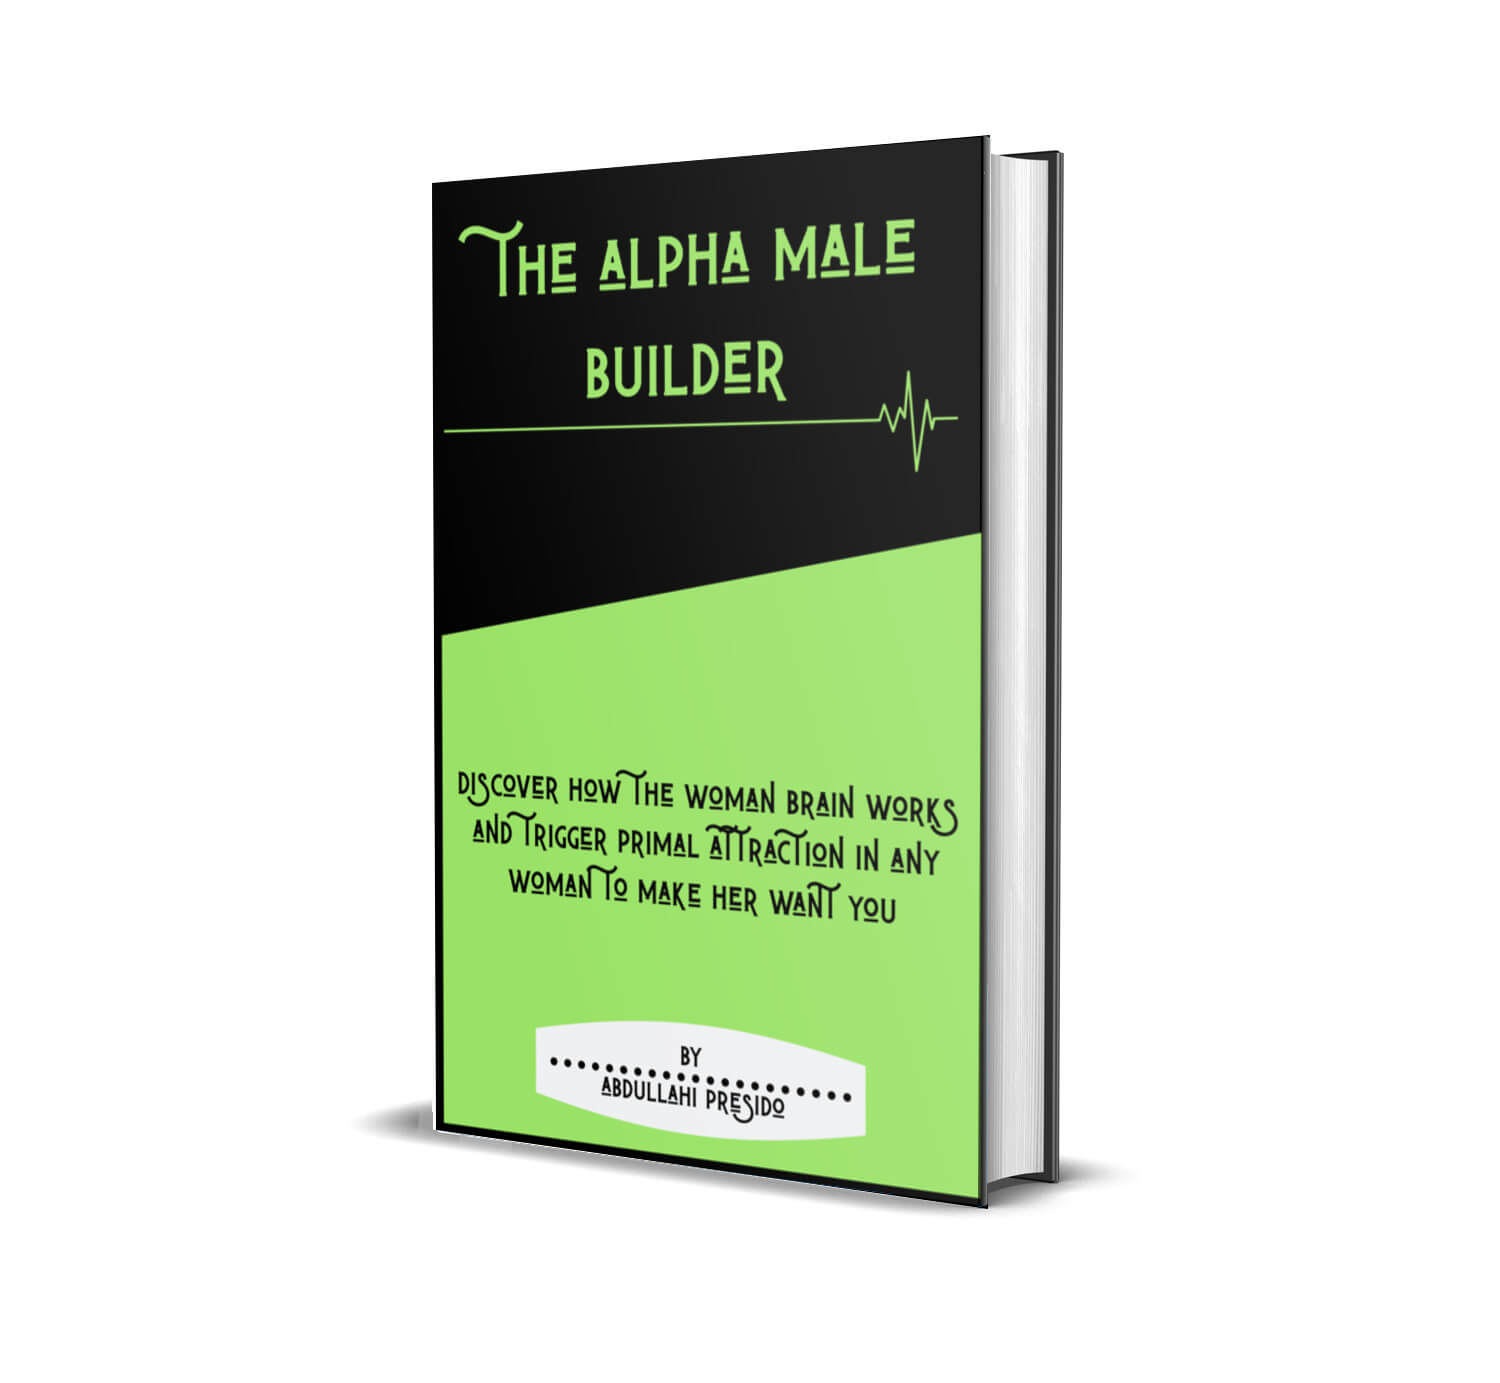 The alpha male builder